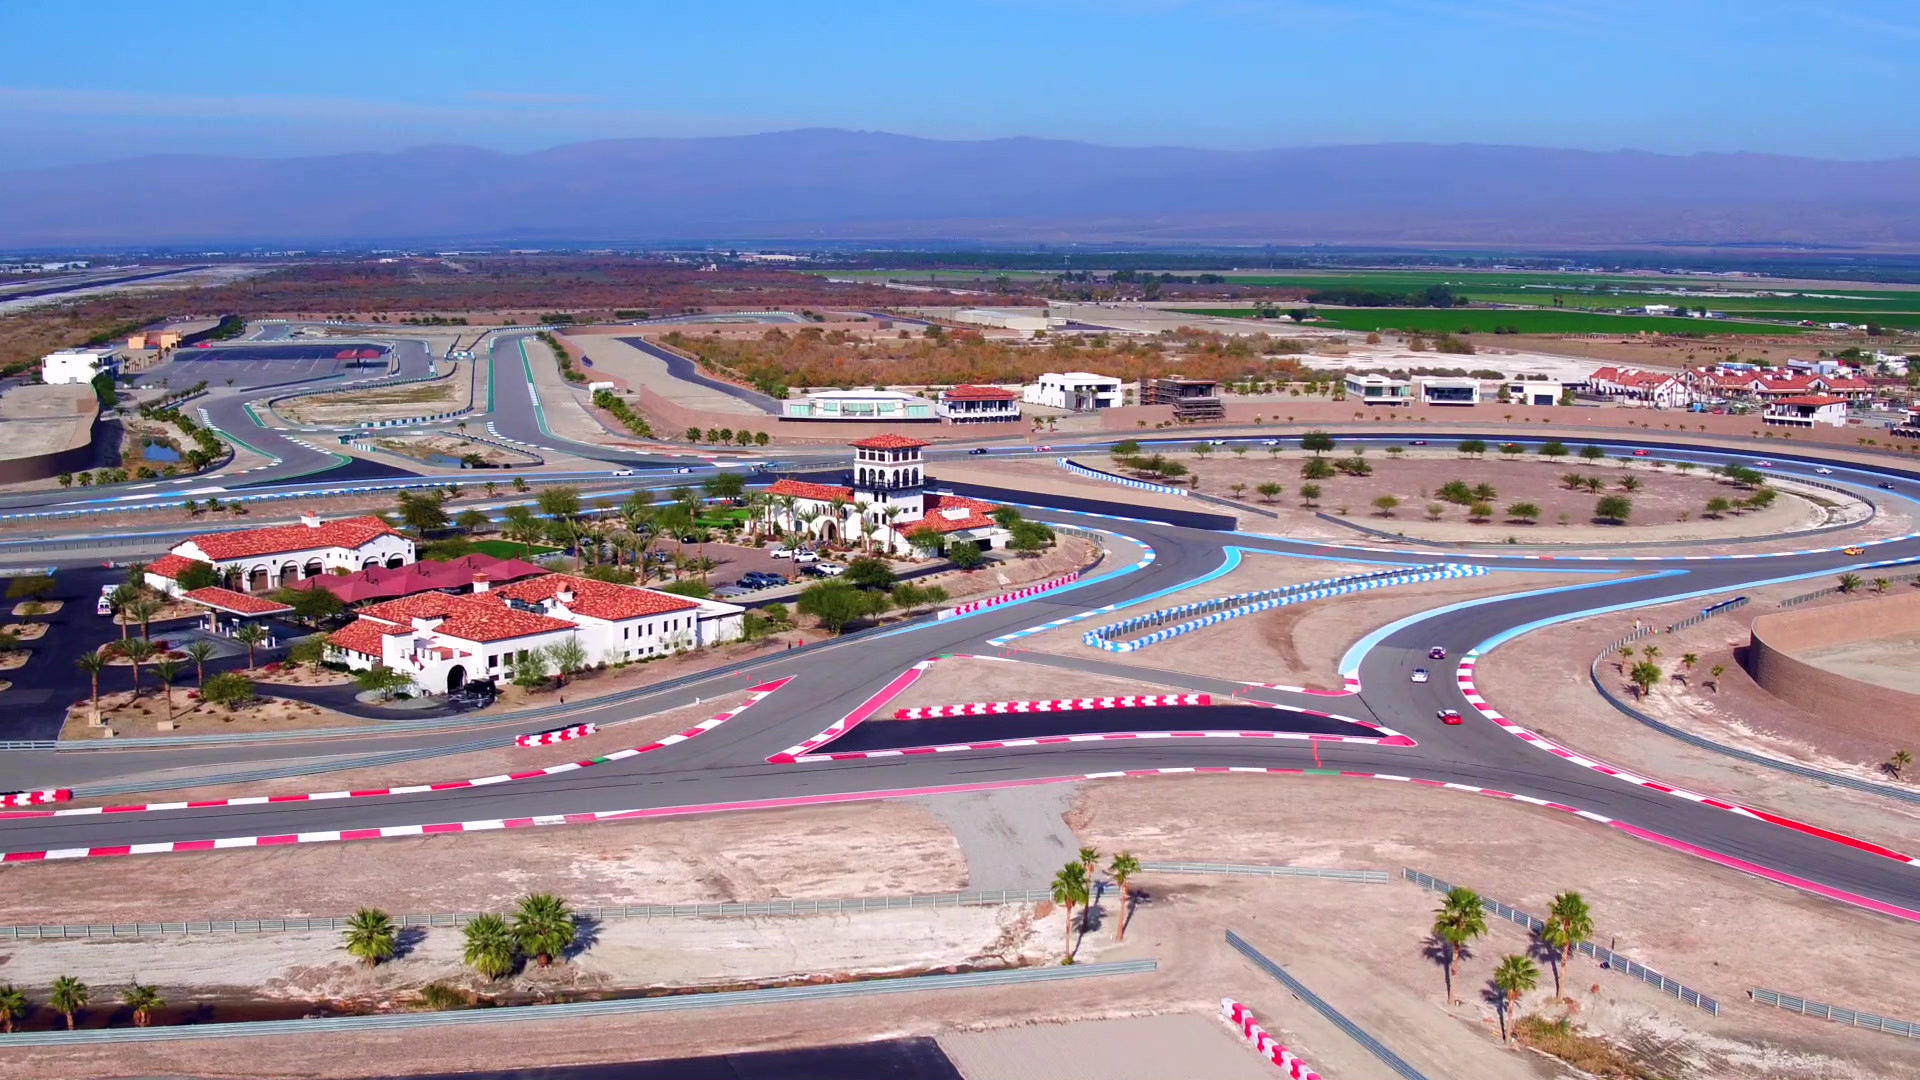 With over five miles of racetrack, three distinguished circuits and 20 configurations, racing at the Thermal Club is an unmatched experience.